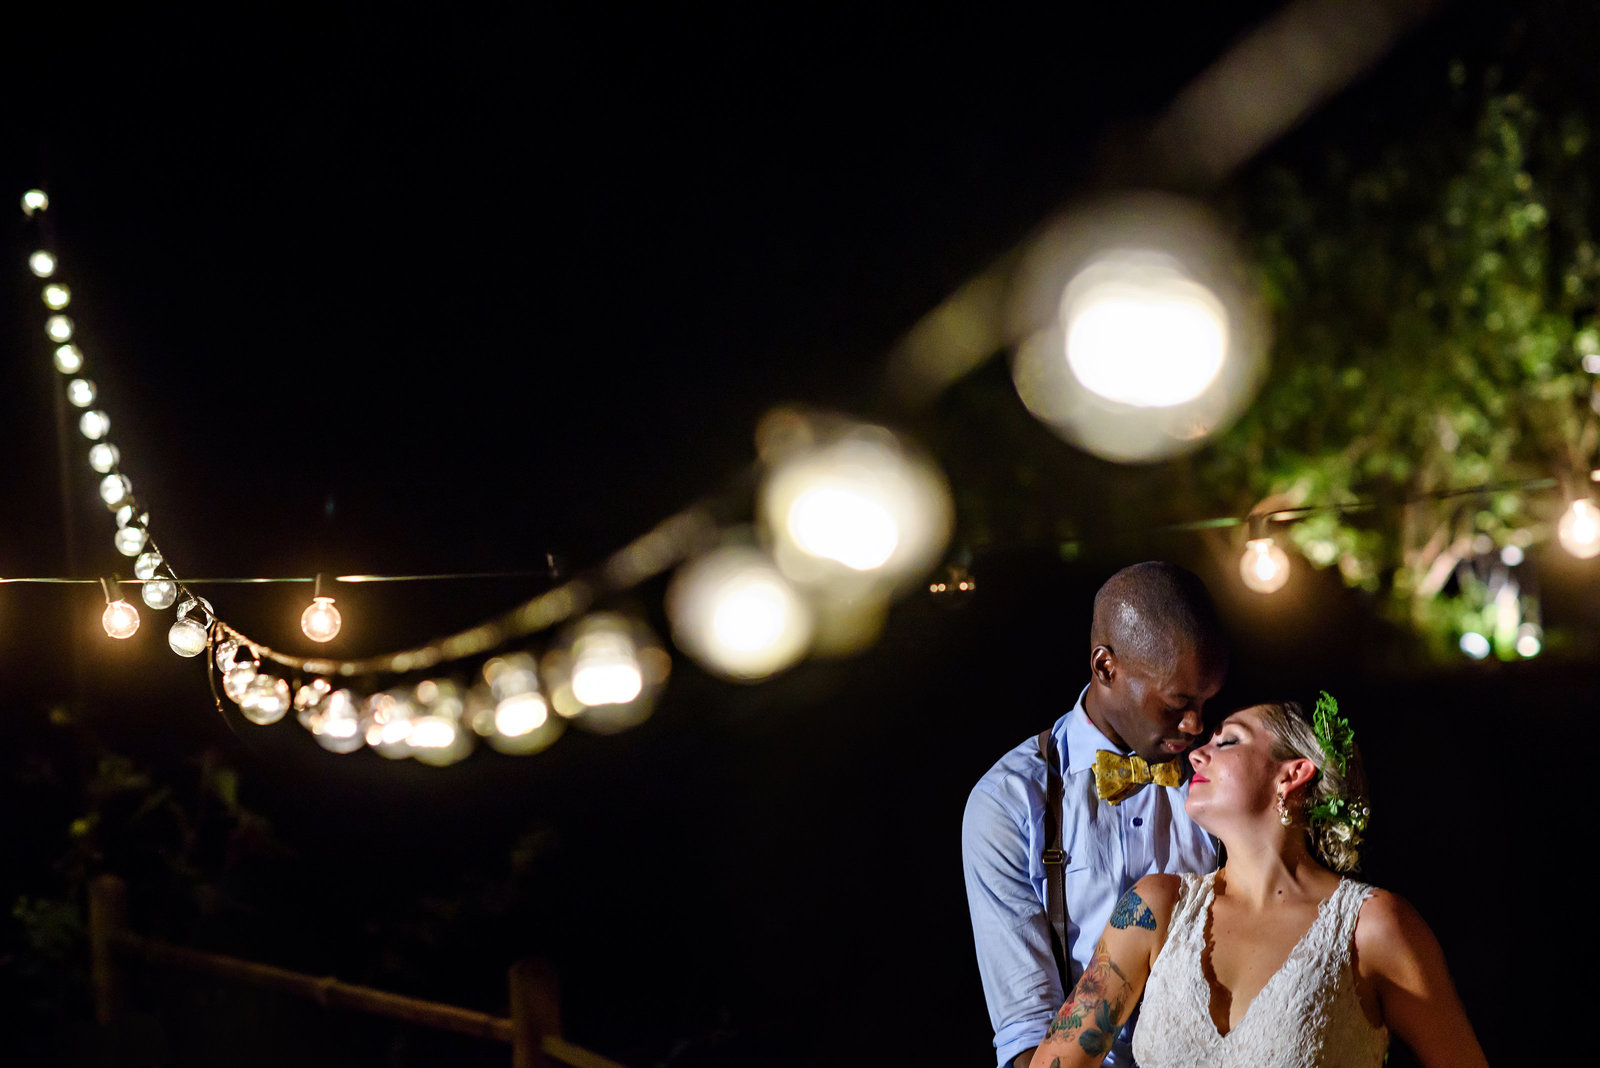 A wedding couple kiss under the string lights at their Baltimore Wedding.